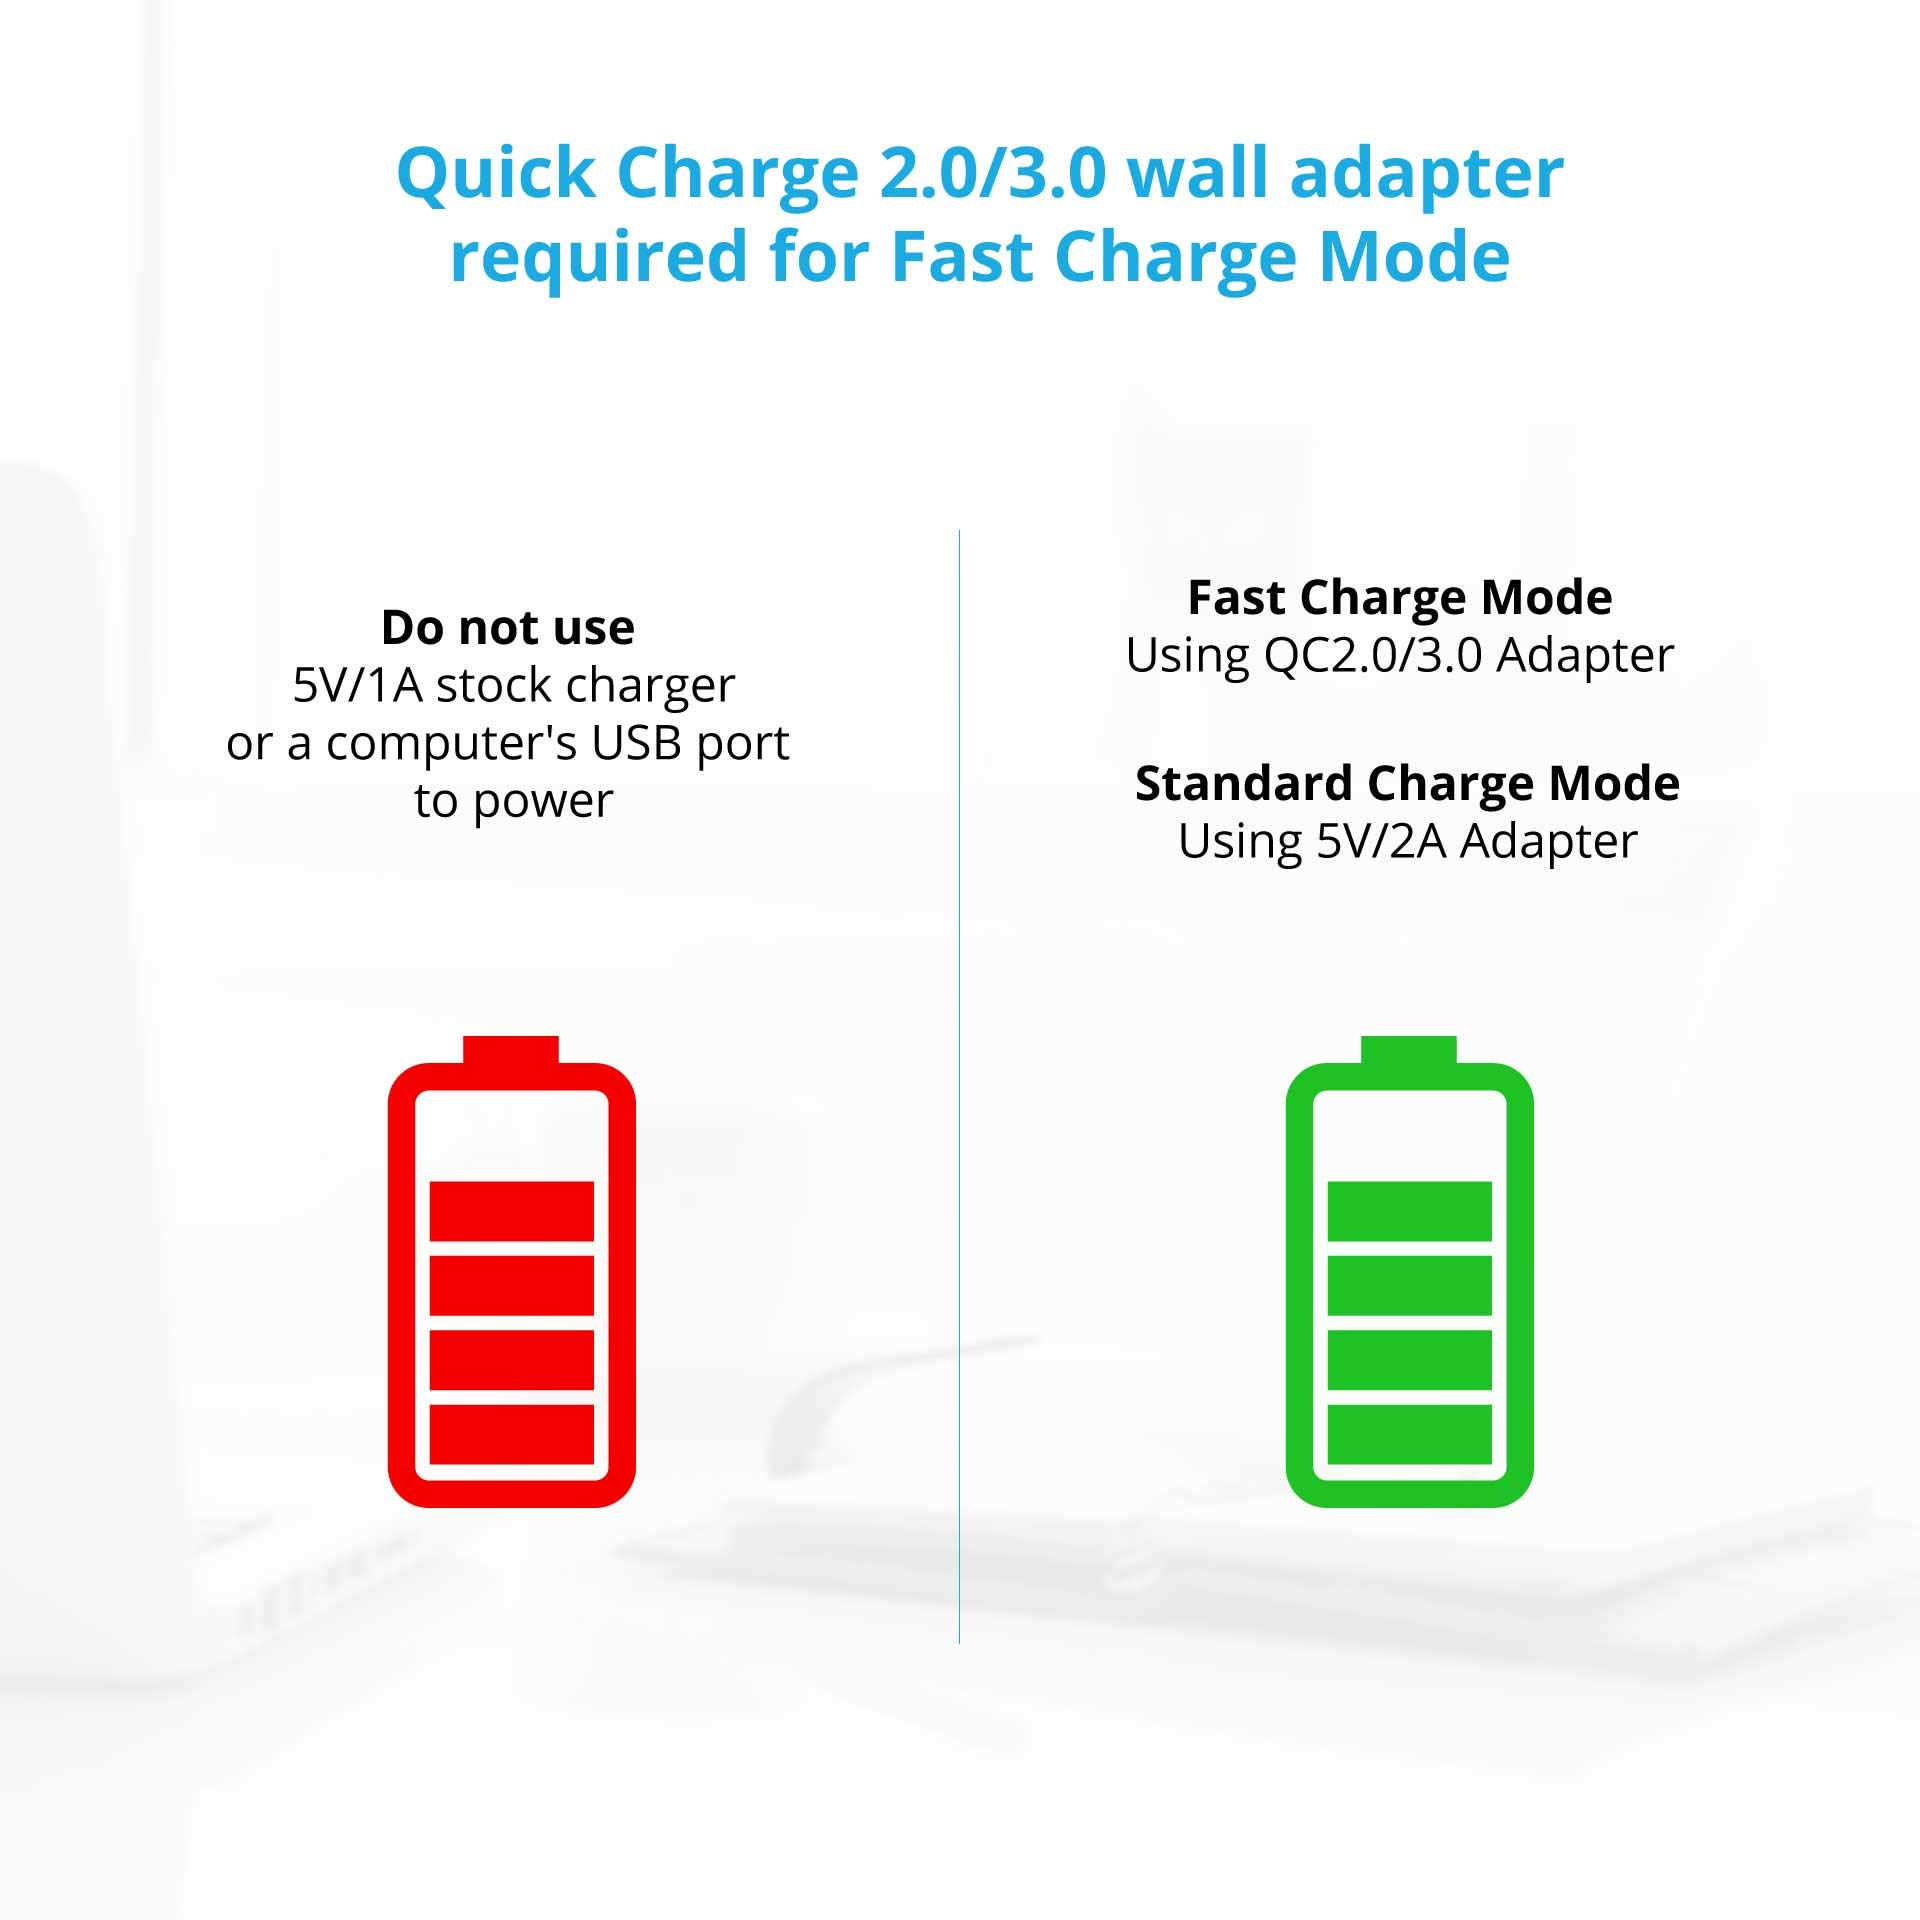 Smart Tech 10W Wireless Charger, Fast Charging Pad for iPhone 11, 11 Pro/X/XR/Xs MAX/8, 8 Plus, Qi Charge for Samsung Galaxy S10, S10+, S10E, S9, S8, S7, S7 Edge, Note 9/10 Metal Frame (No AC Adapter)